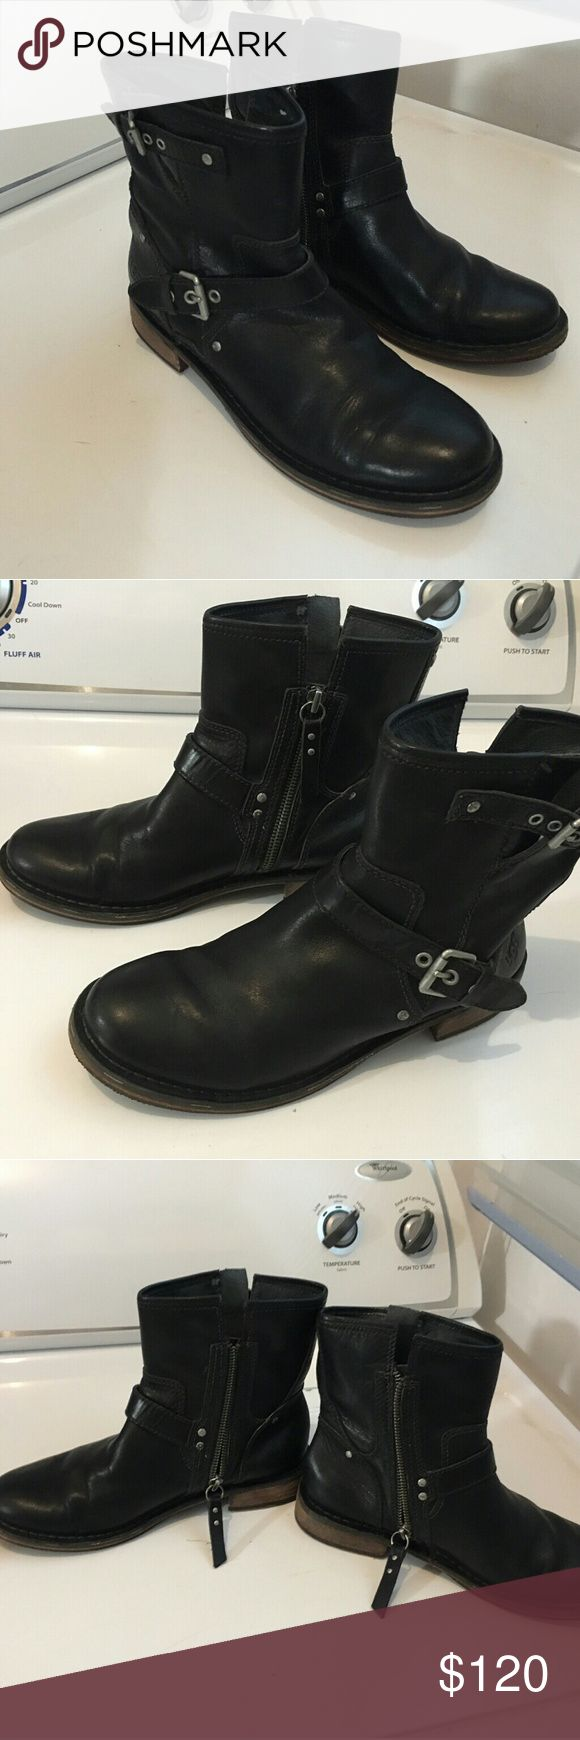 UGG Leather Moto Boots Size 7 black UGG zip-up boots with buckles.  Slight signs of wear (see photos). Does not include original packaging. Leather upper with sheepskin foot lining.  Smoke and pet free home. UGG Shoes Combat & Moto Boots